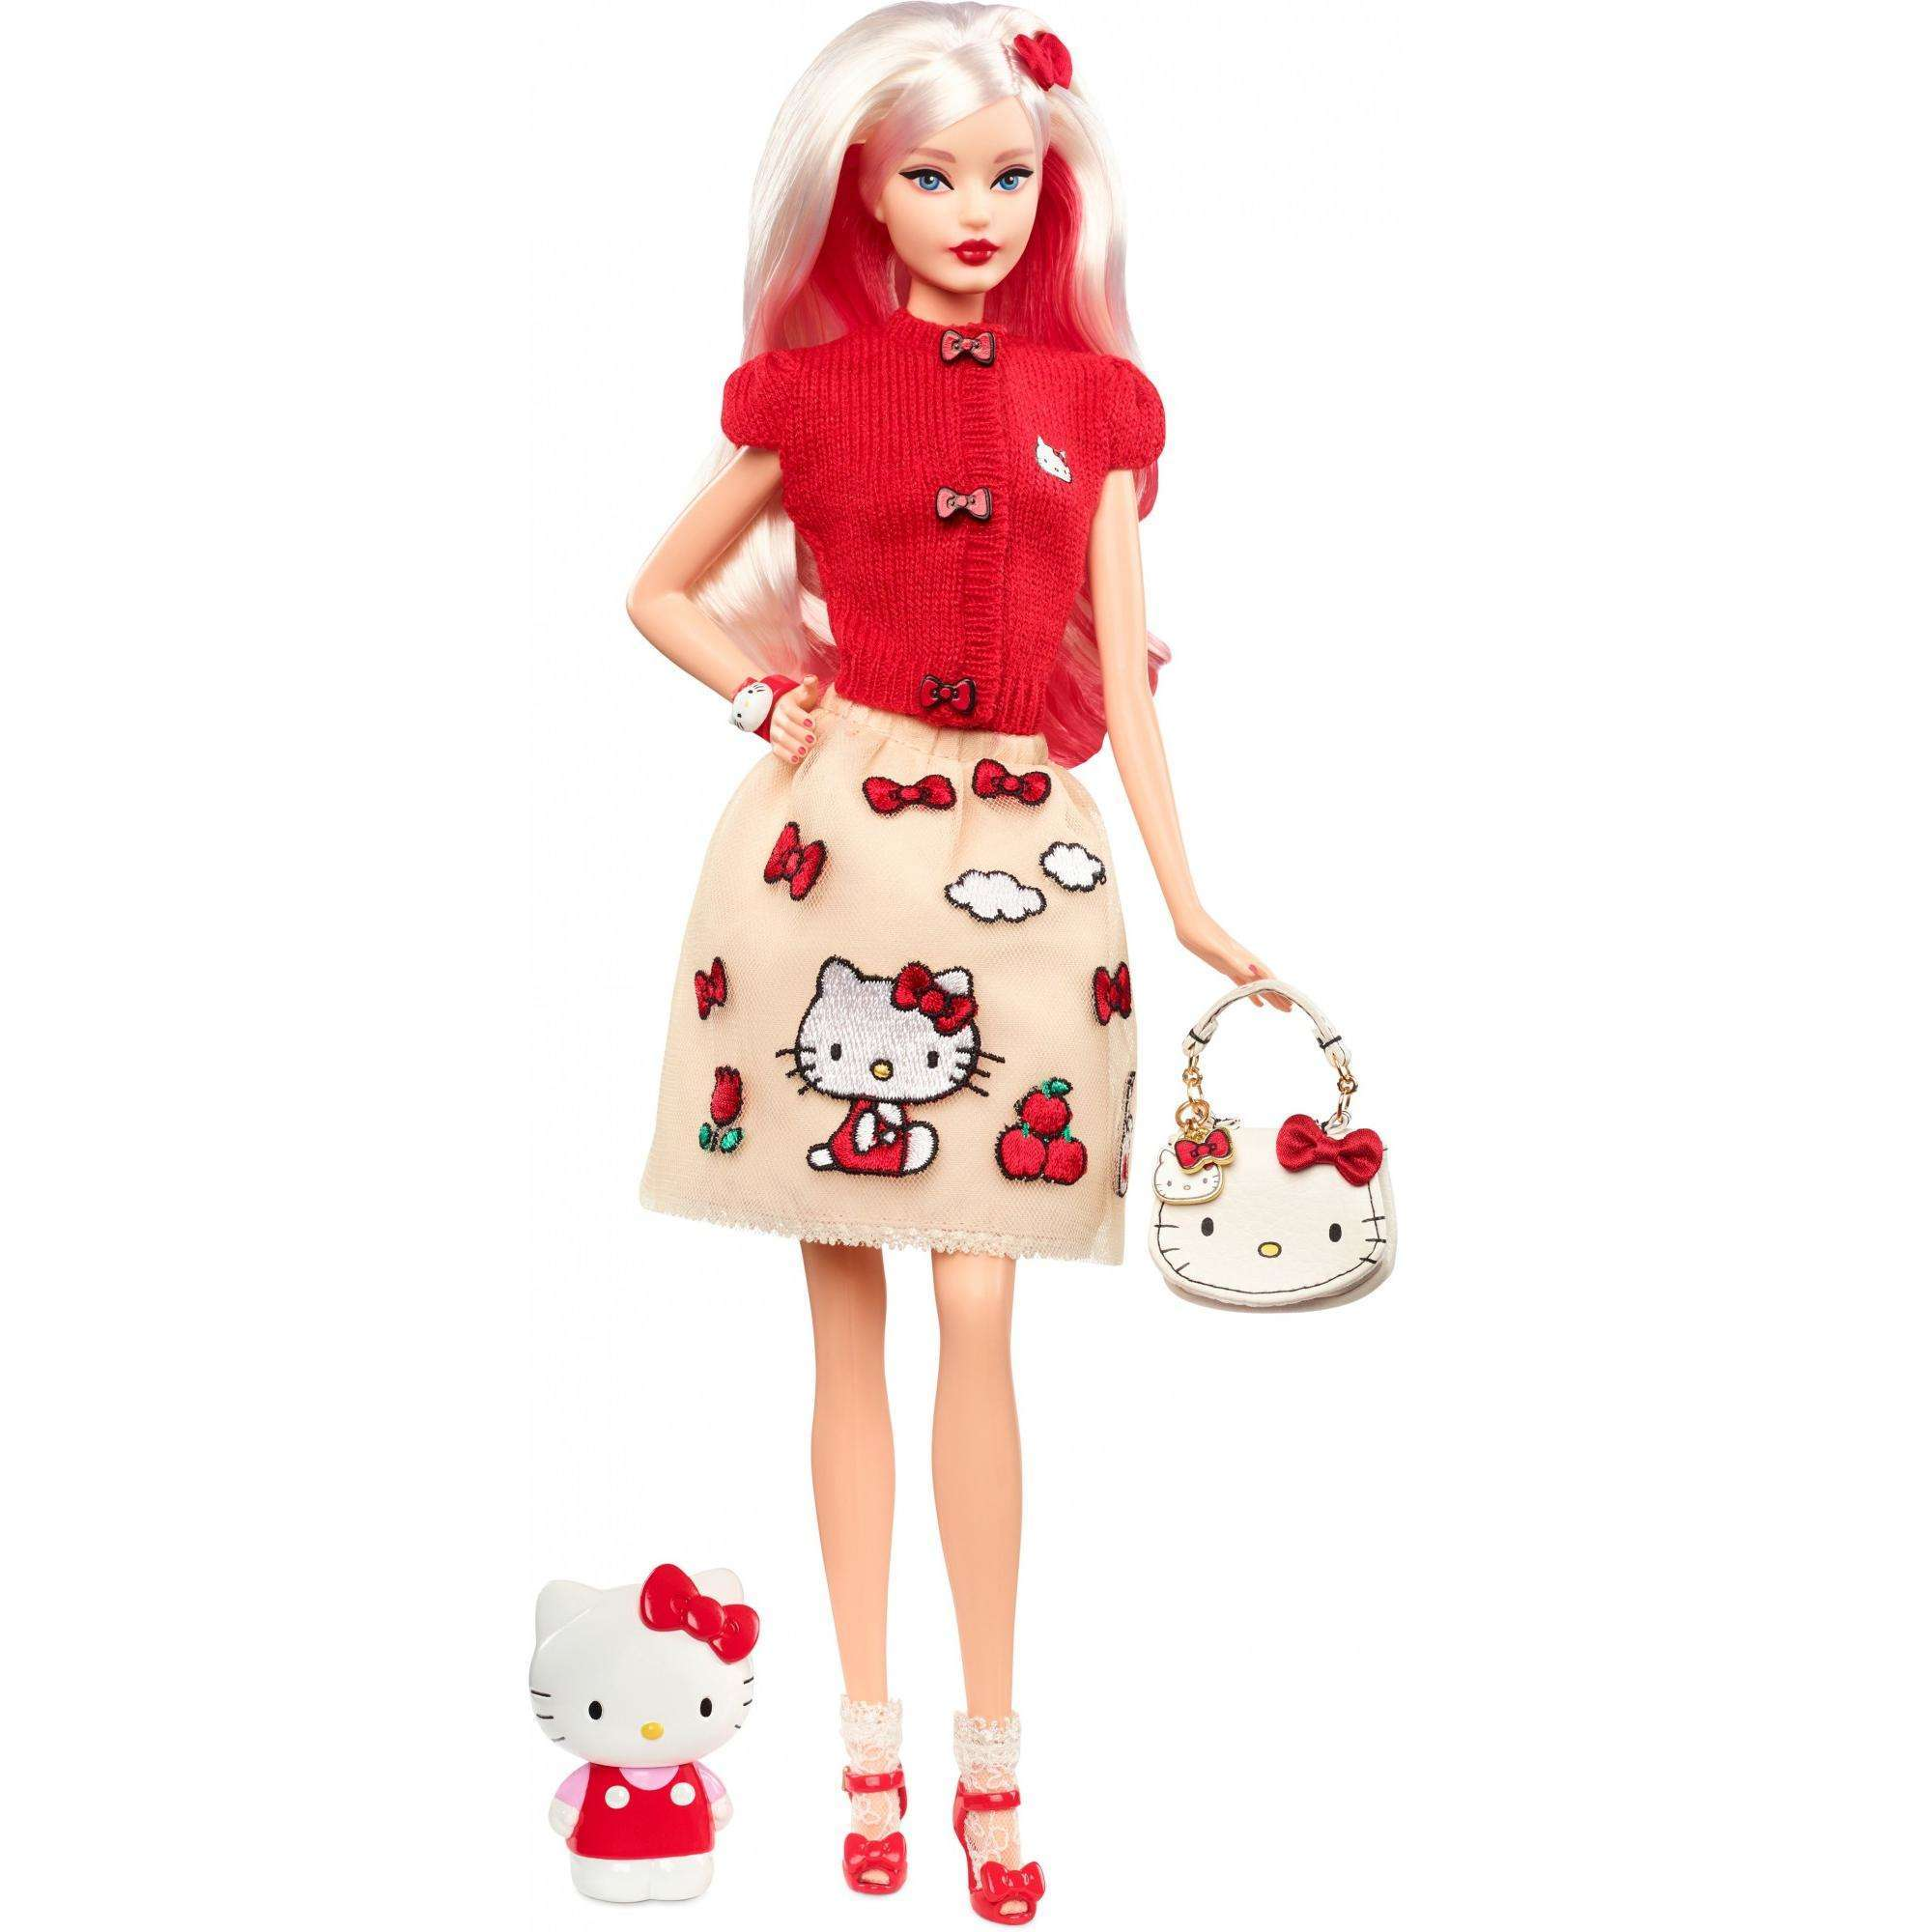 Barbie Hello Kitty Icon Fashion Dress Doll with Stand by Mattel